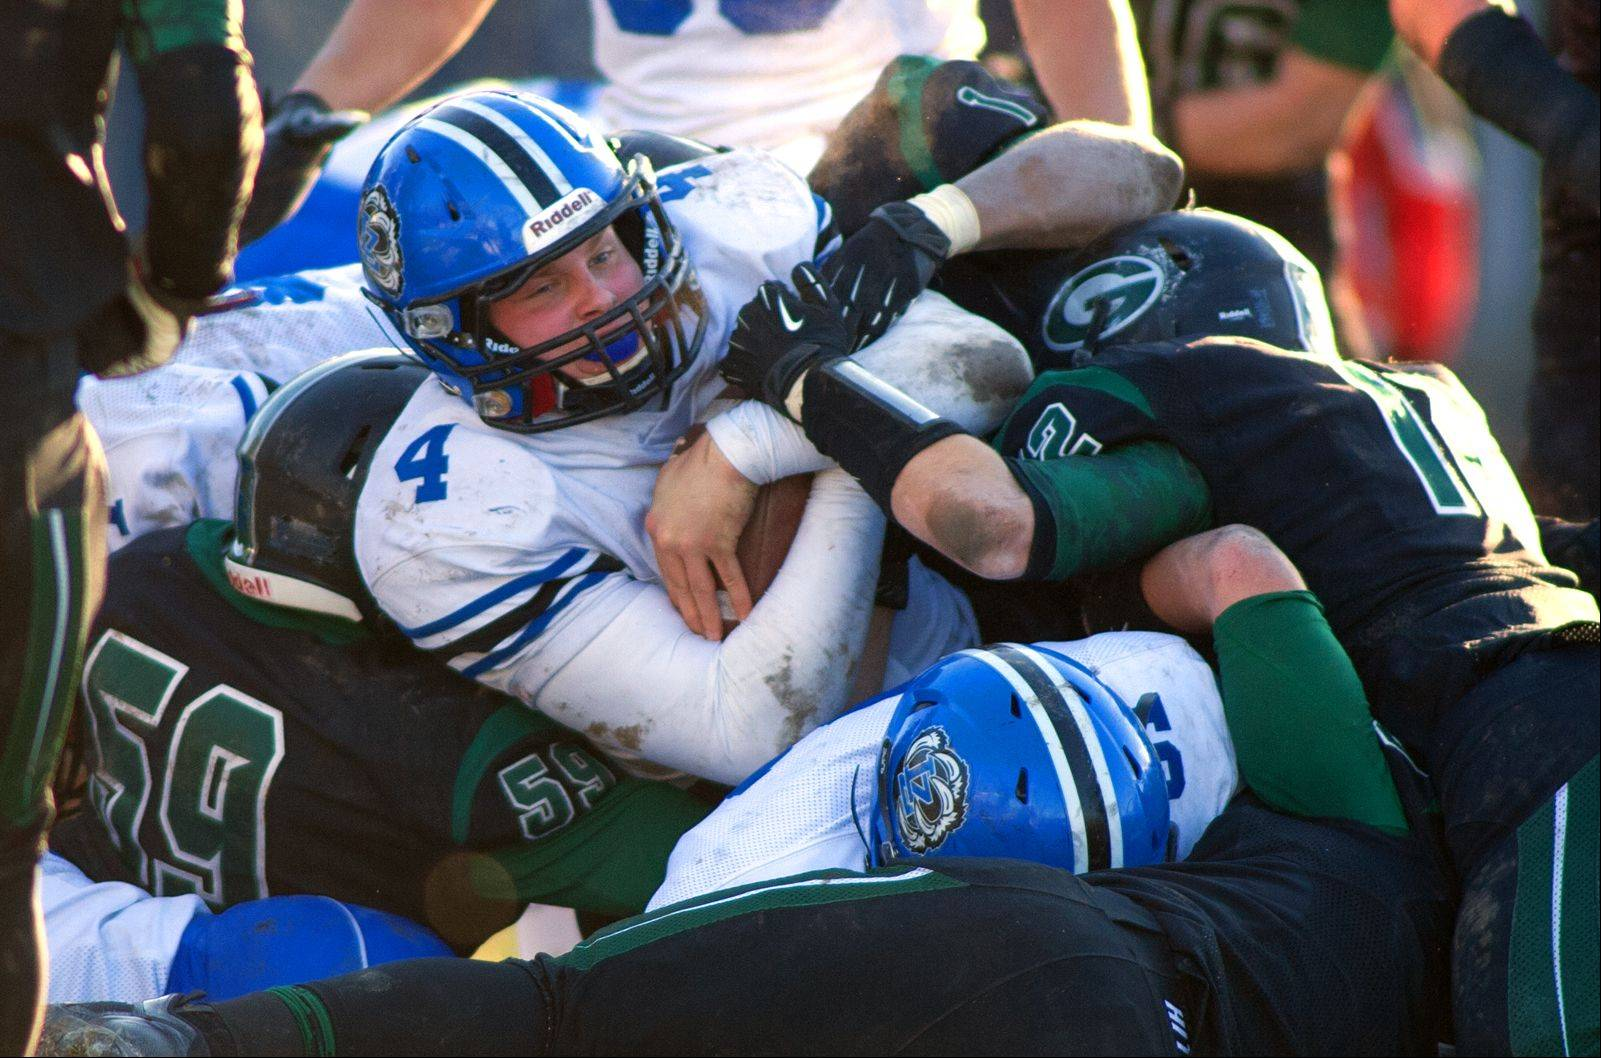 Lake Zurich quarterback Noah Allgood ices the game late in the fourth quarter as he dives over the goal line for a touchdown against Glenbard West.